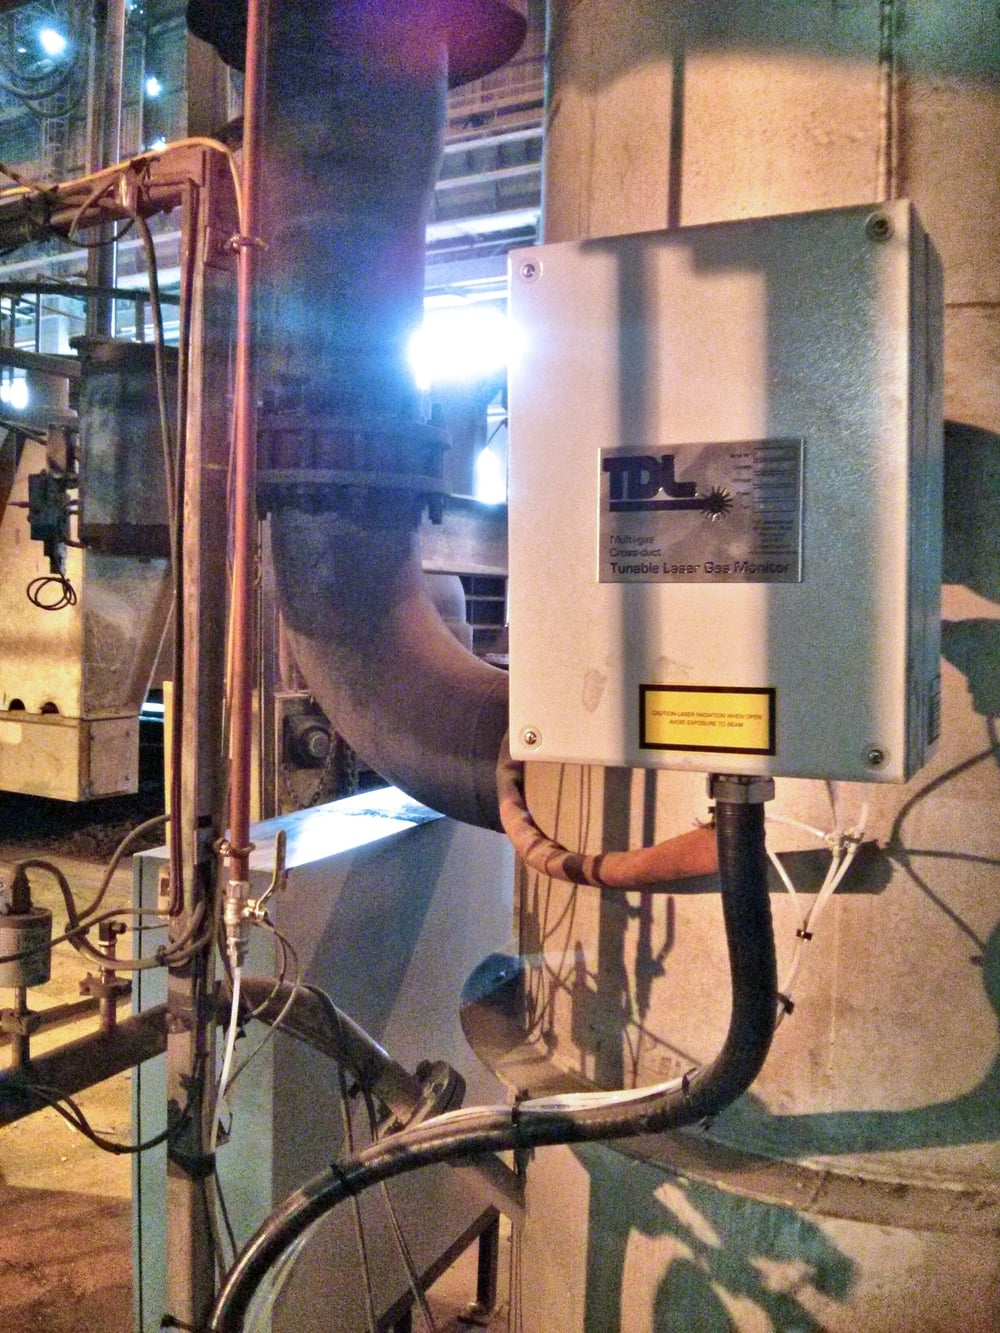 The TDL multi-gas Cross-duct laser monitoring system installed at a steel plant monitoring a secondary steel manufacturing process